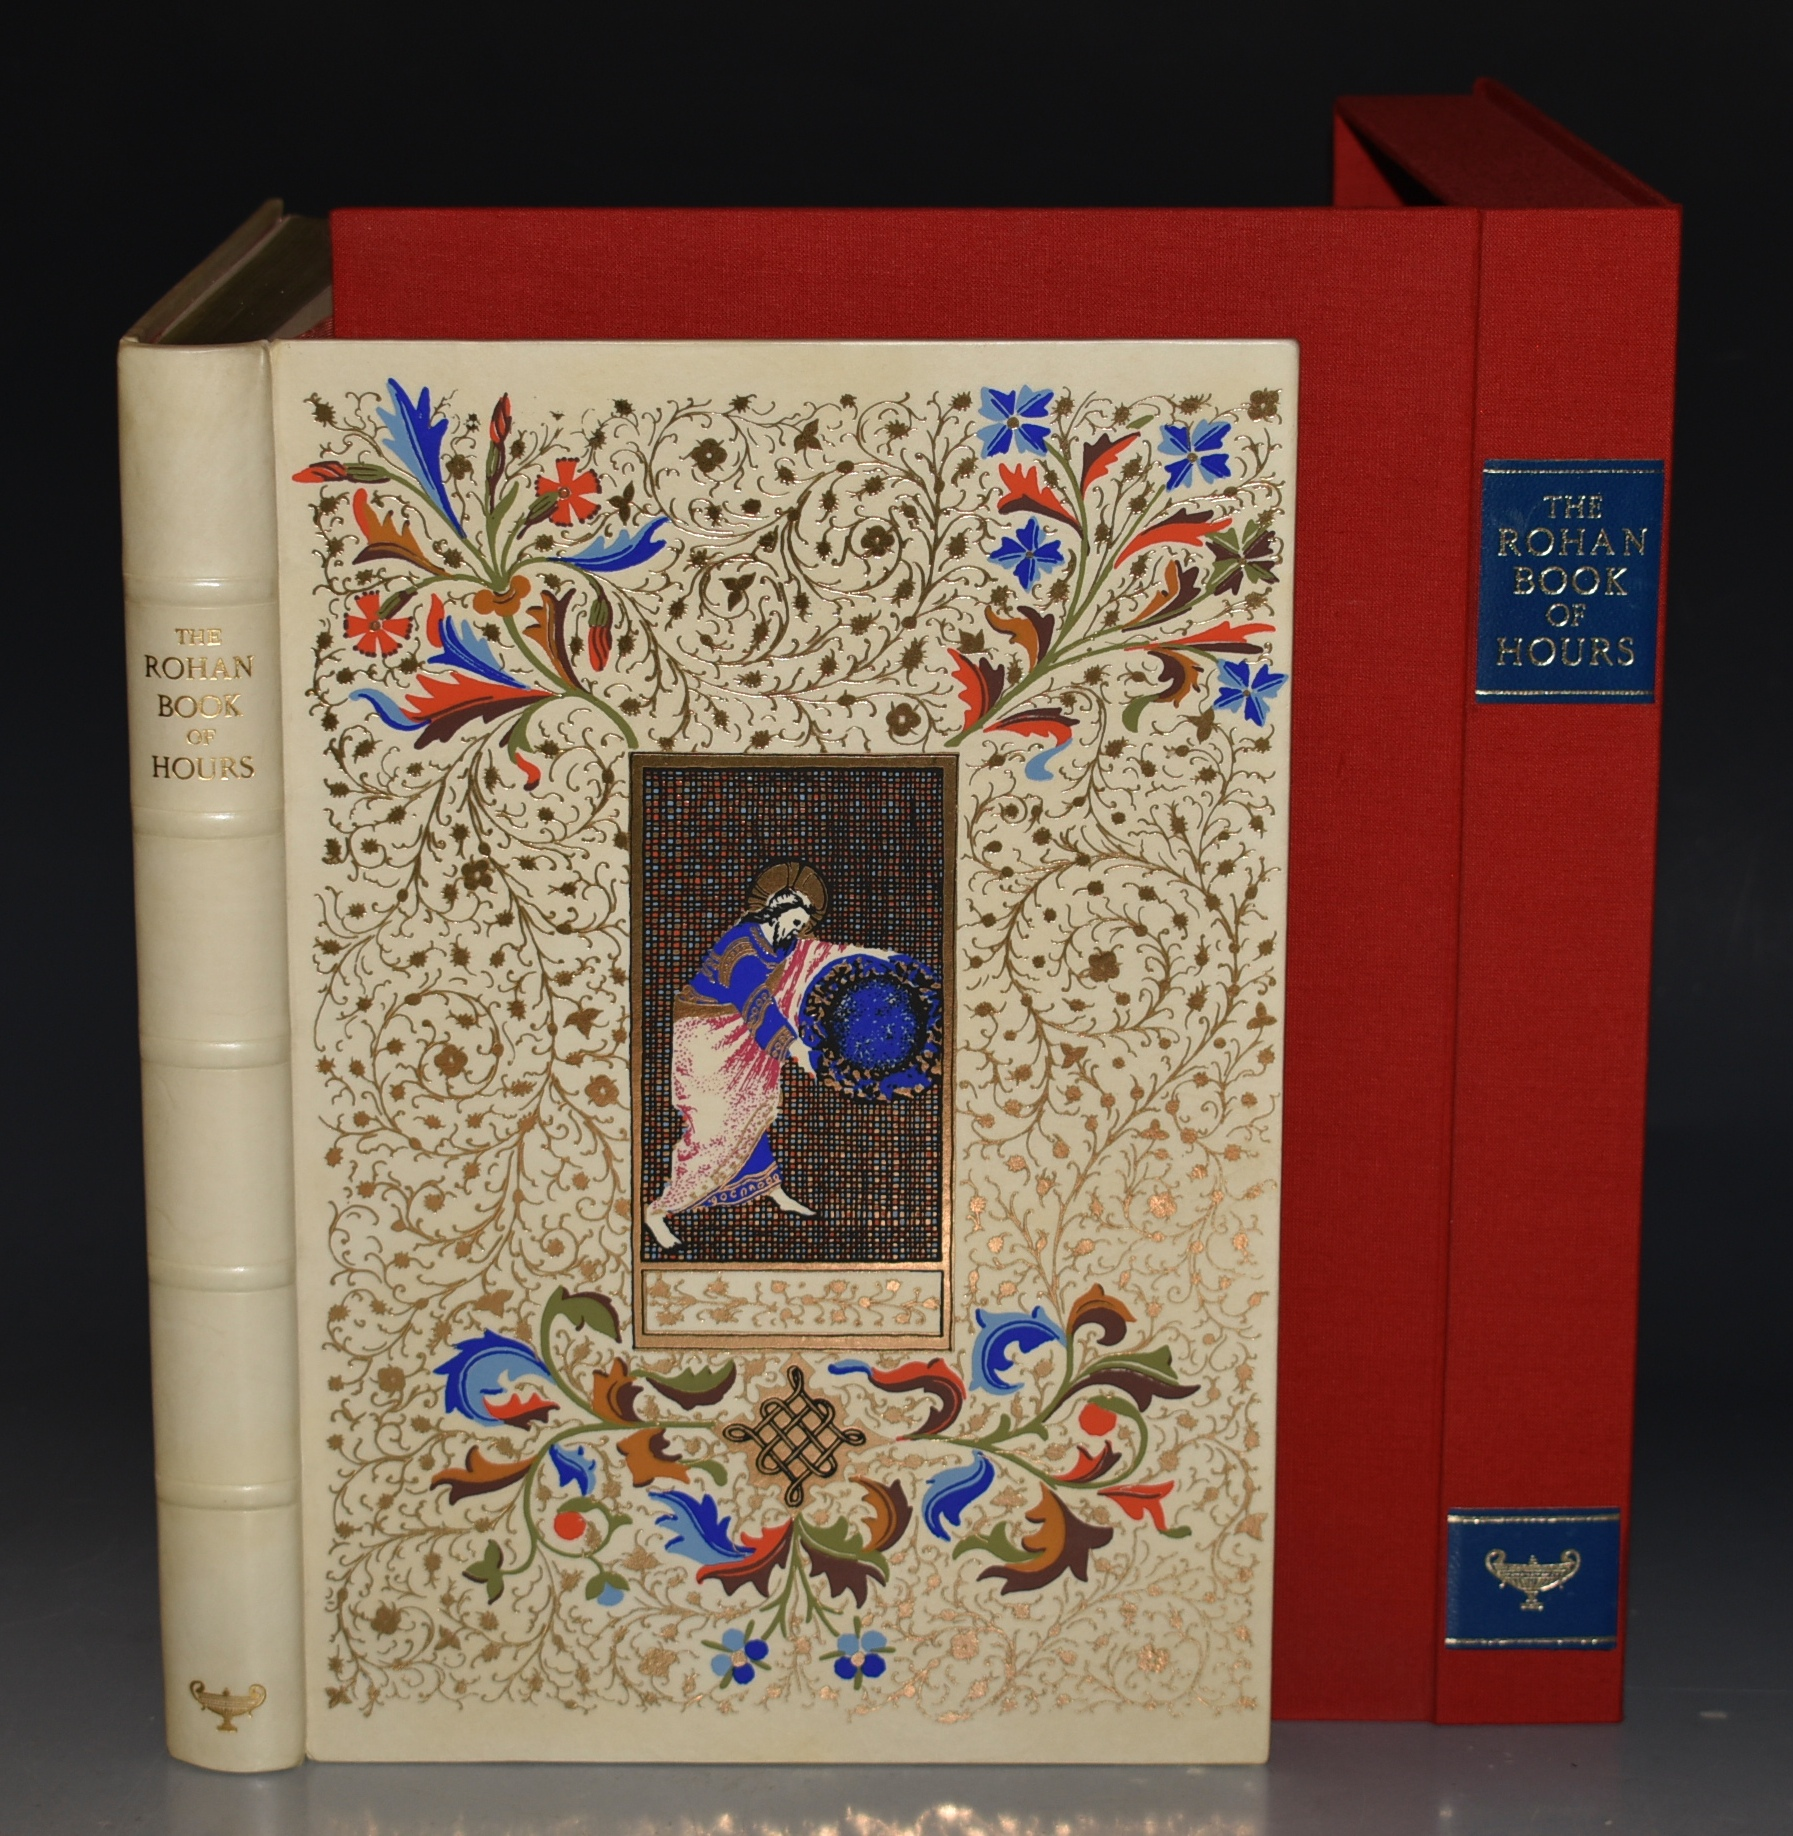 Image for The Rohan Book of Hours. SIGNED Limited Numbered Edition.